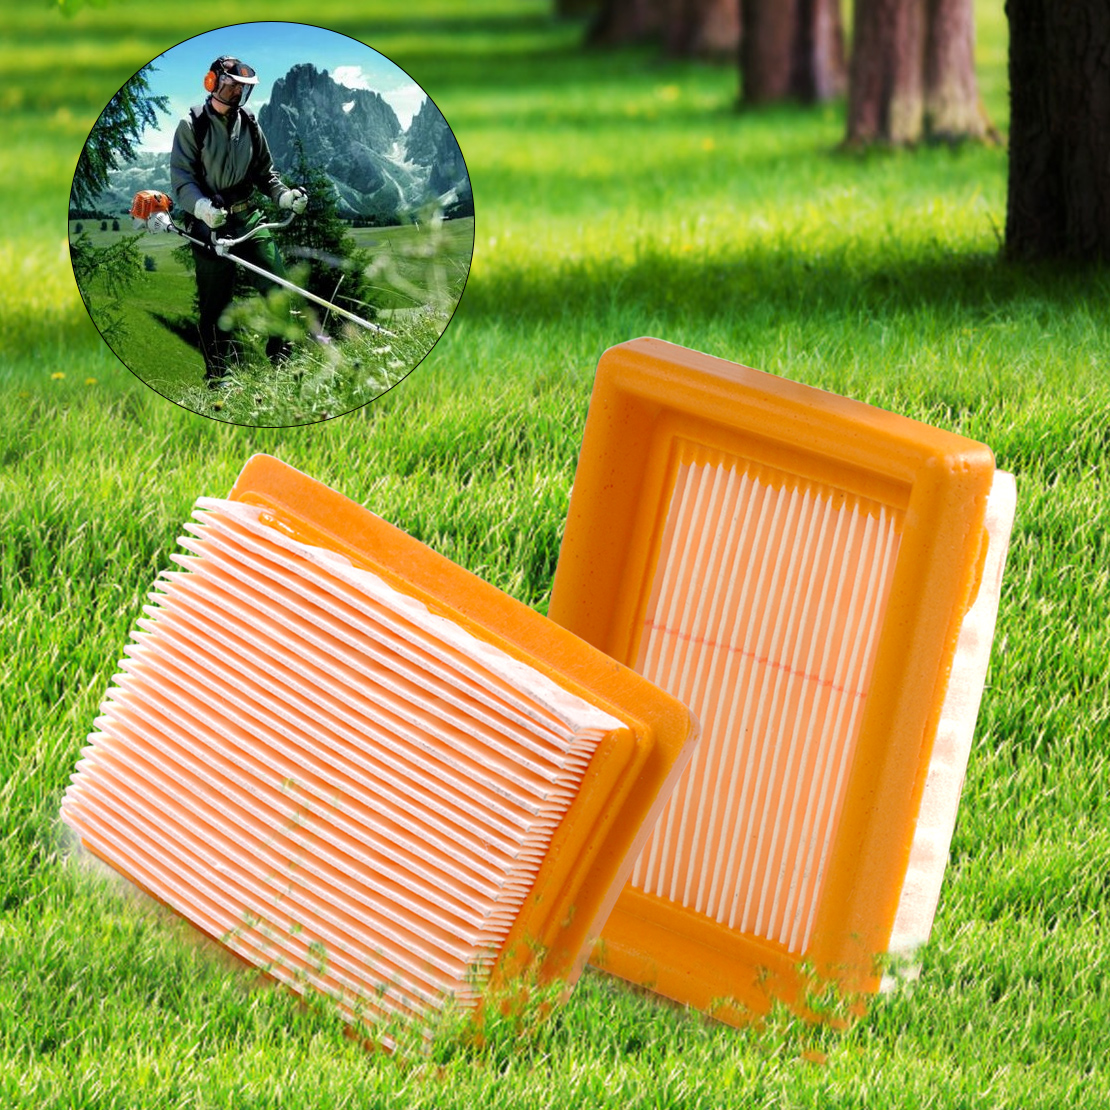 LETAOSK New Air Filter Replacement for STIHL Trimmer FS120 FS200 FS250 FS300 FS350 MM55 2 pcs lot air filter for stihl 4224 140 1801a 4224 140 1801a ts700 ts800 new